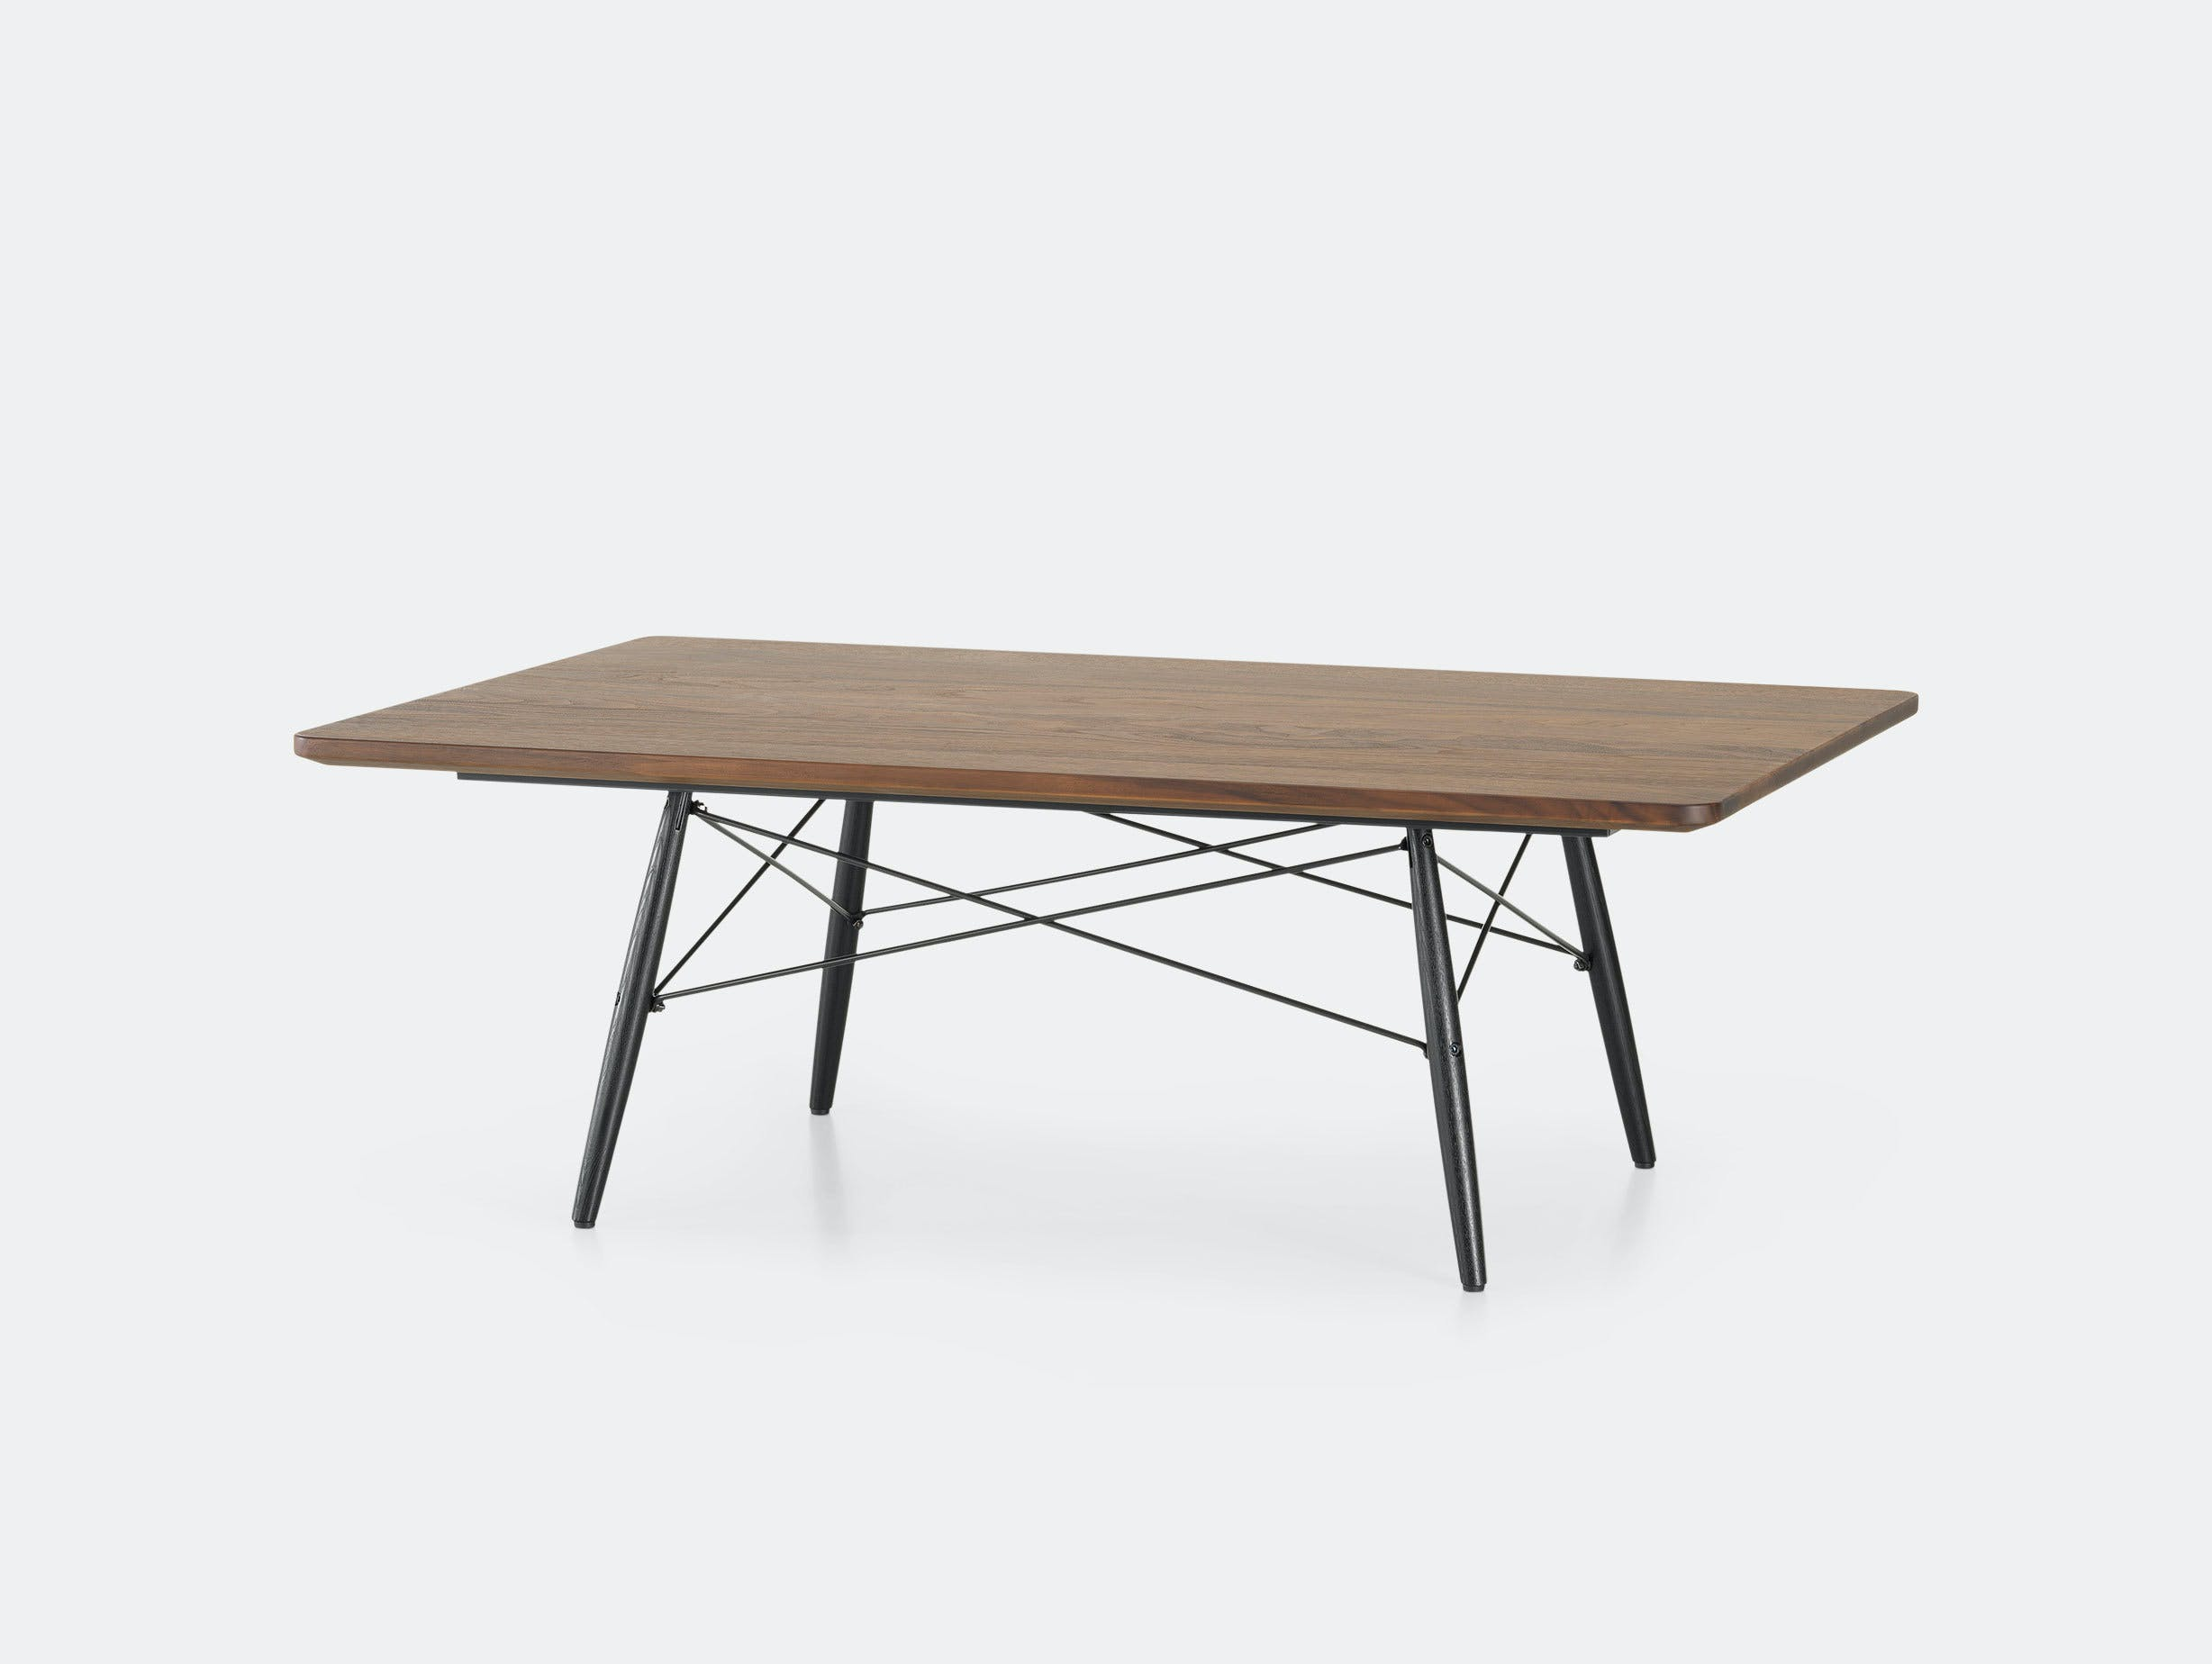 Vitra Eames Coffee Table Walnut Charles And Ray Eames